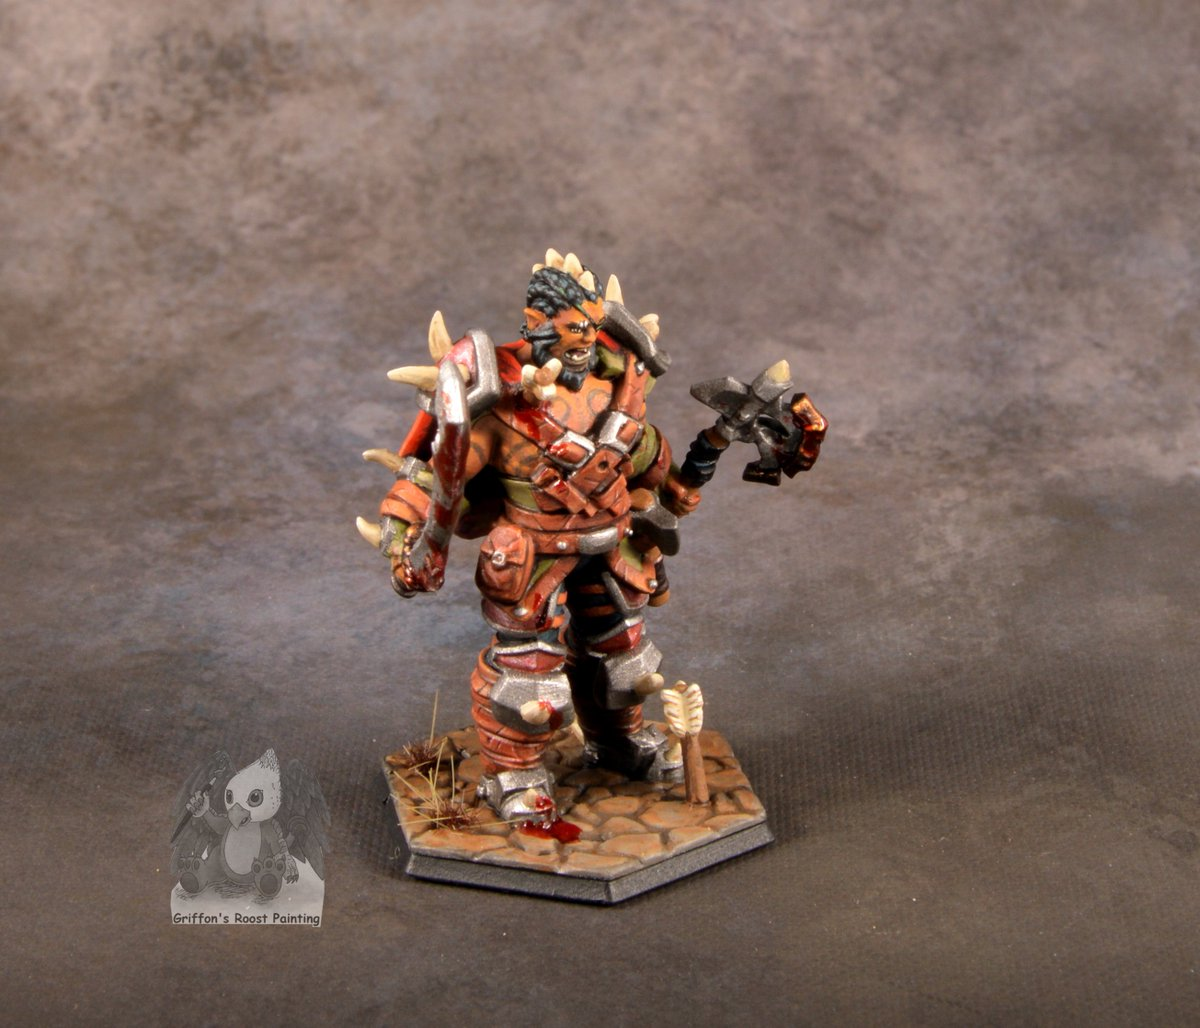 Griffons Roost Painting On Twitter Heres A Heroforgeminis Model